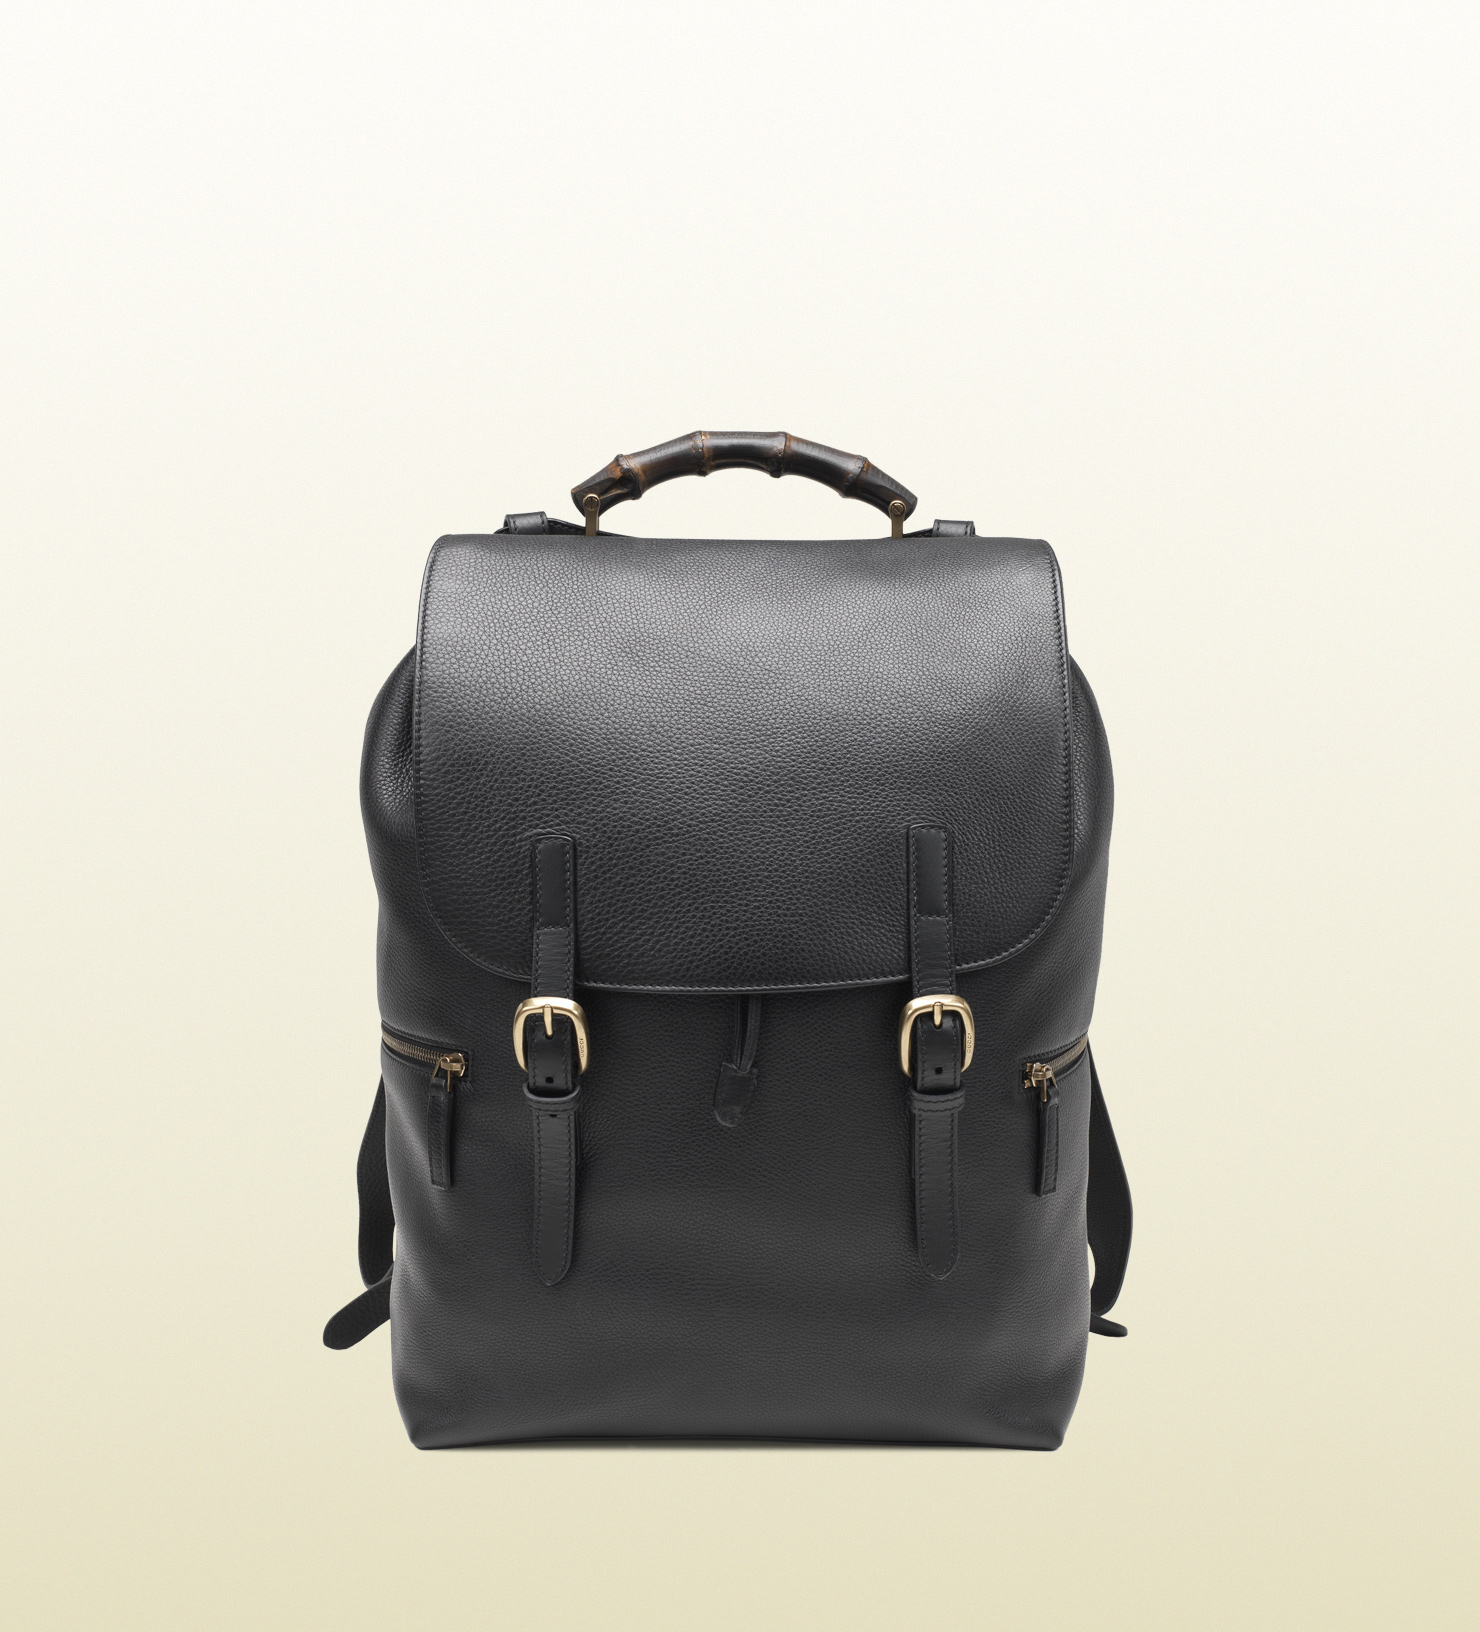 Gucci Black Leather Backpack in Black for Men - Lyst 839bd1b4f88e1